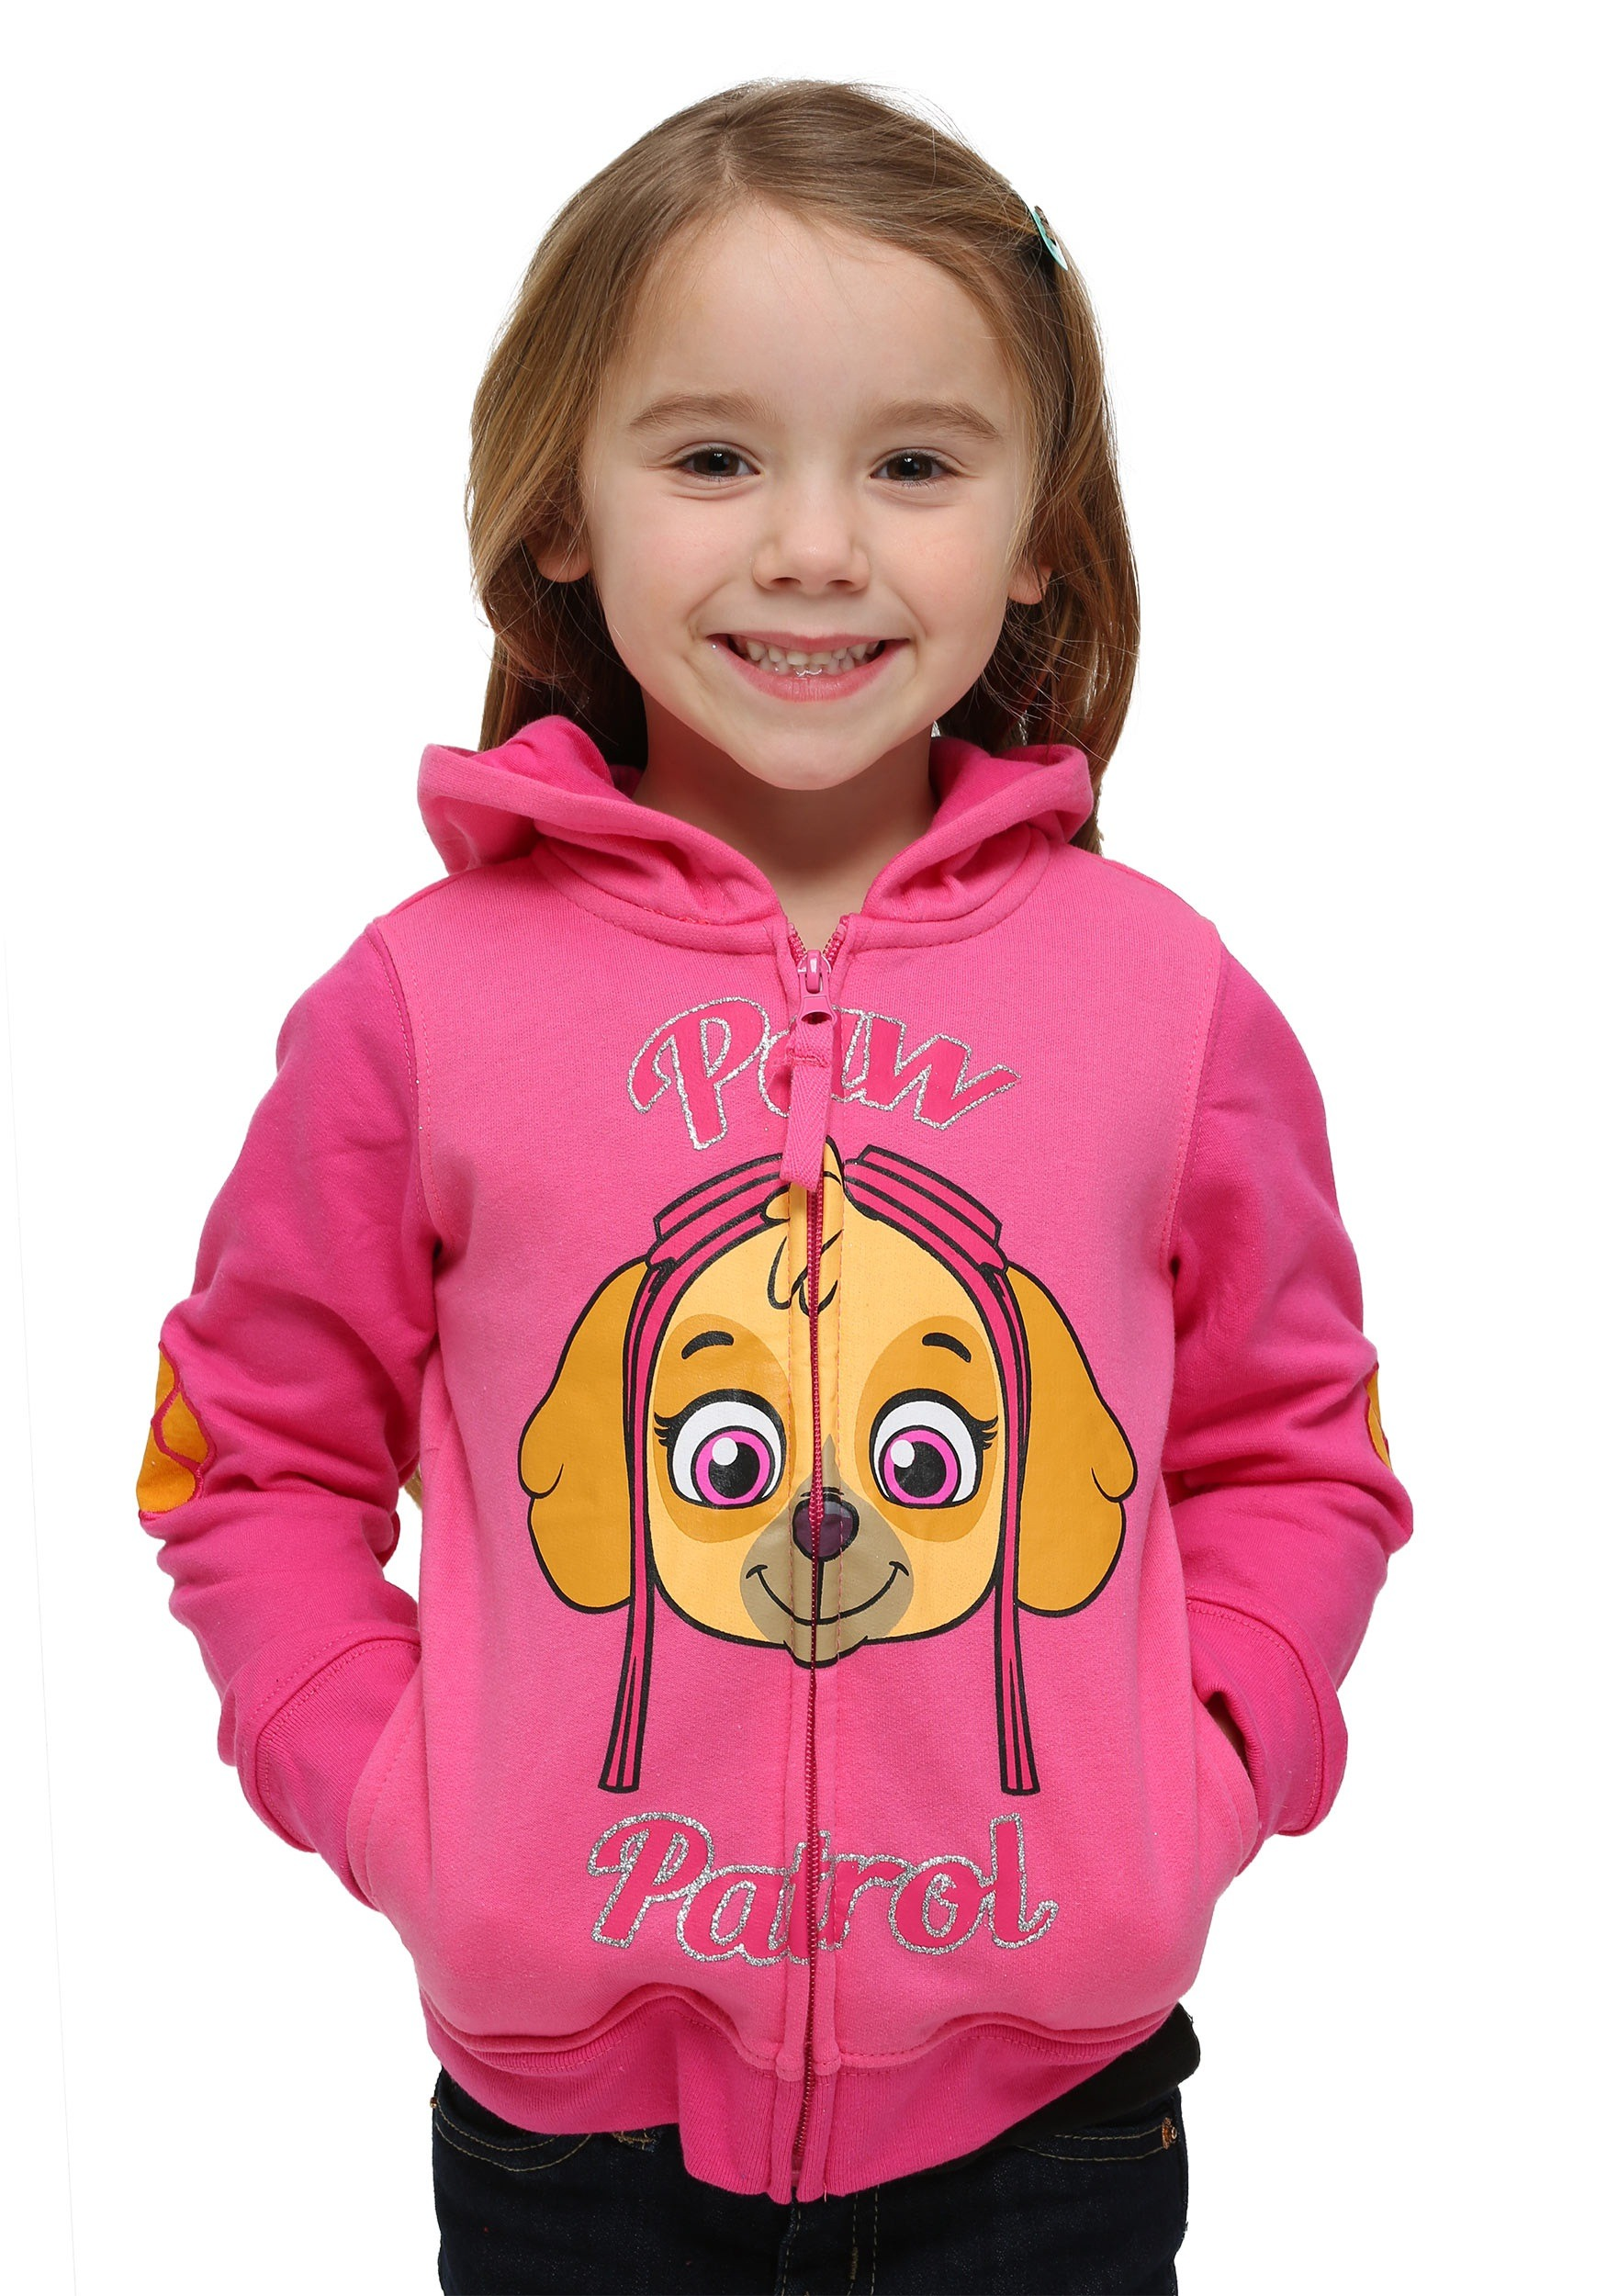 Find great deals on eBay for baby girl hoodies. Shop with confidence.